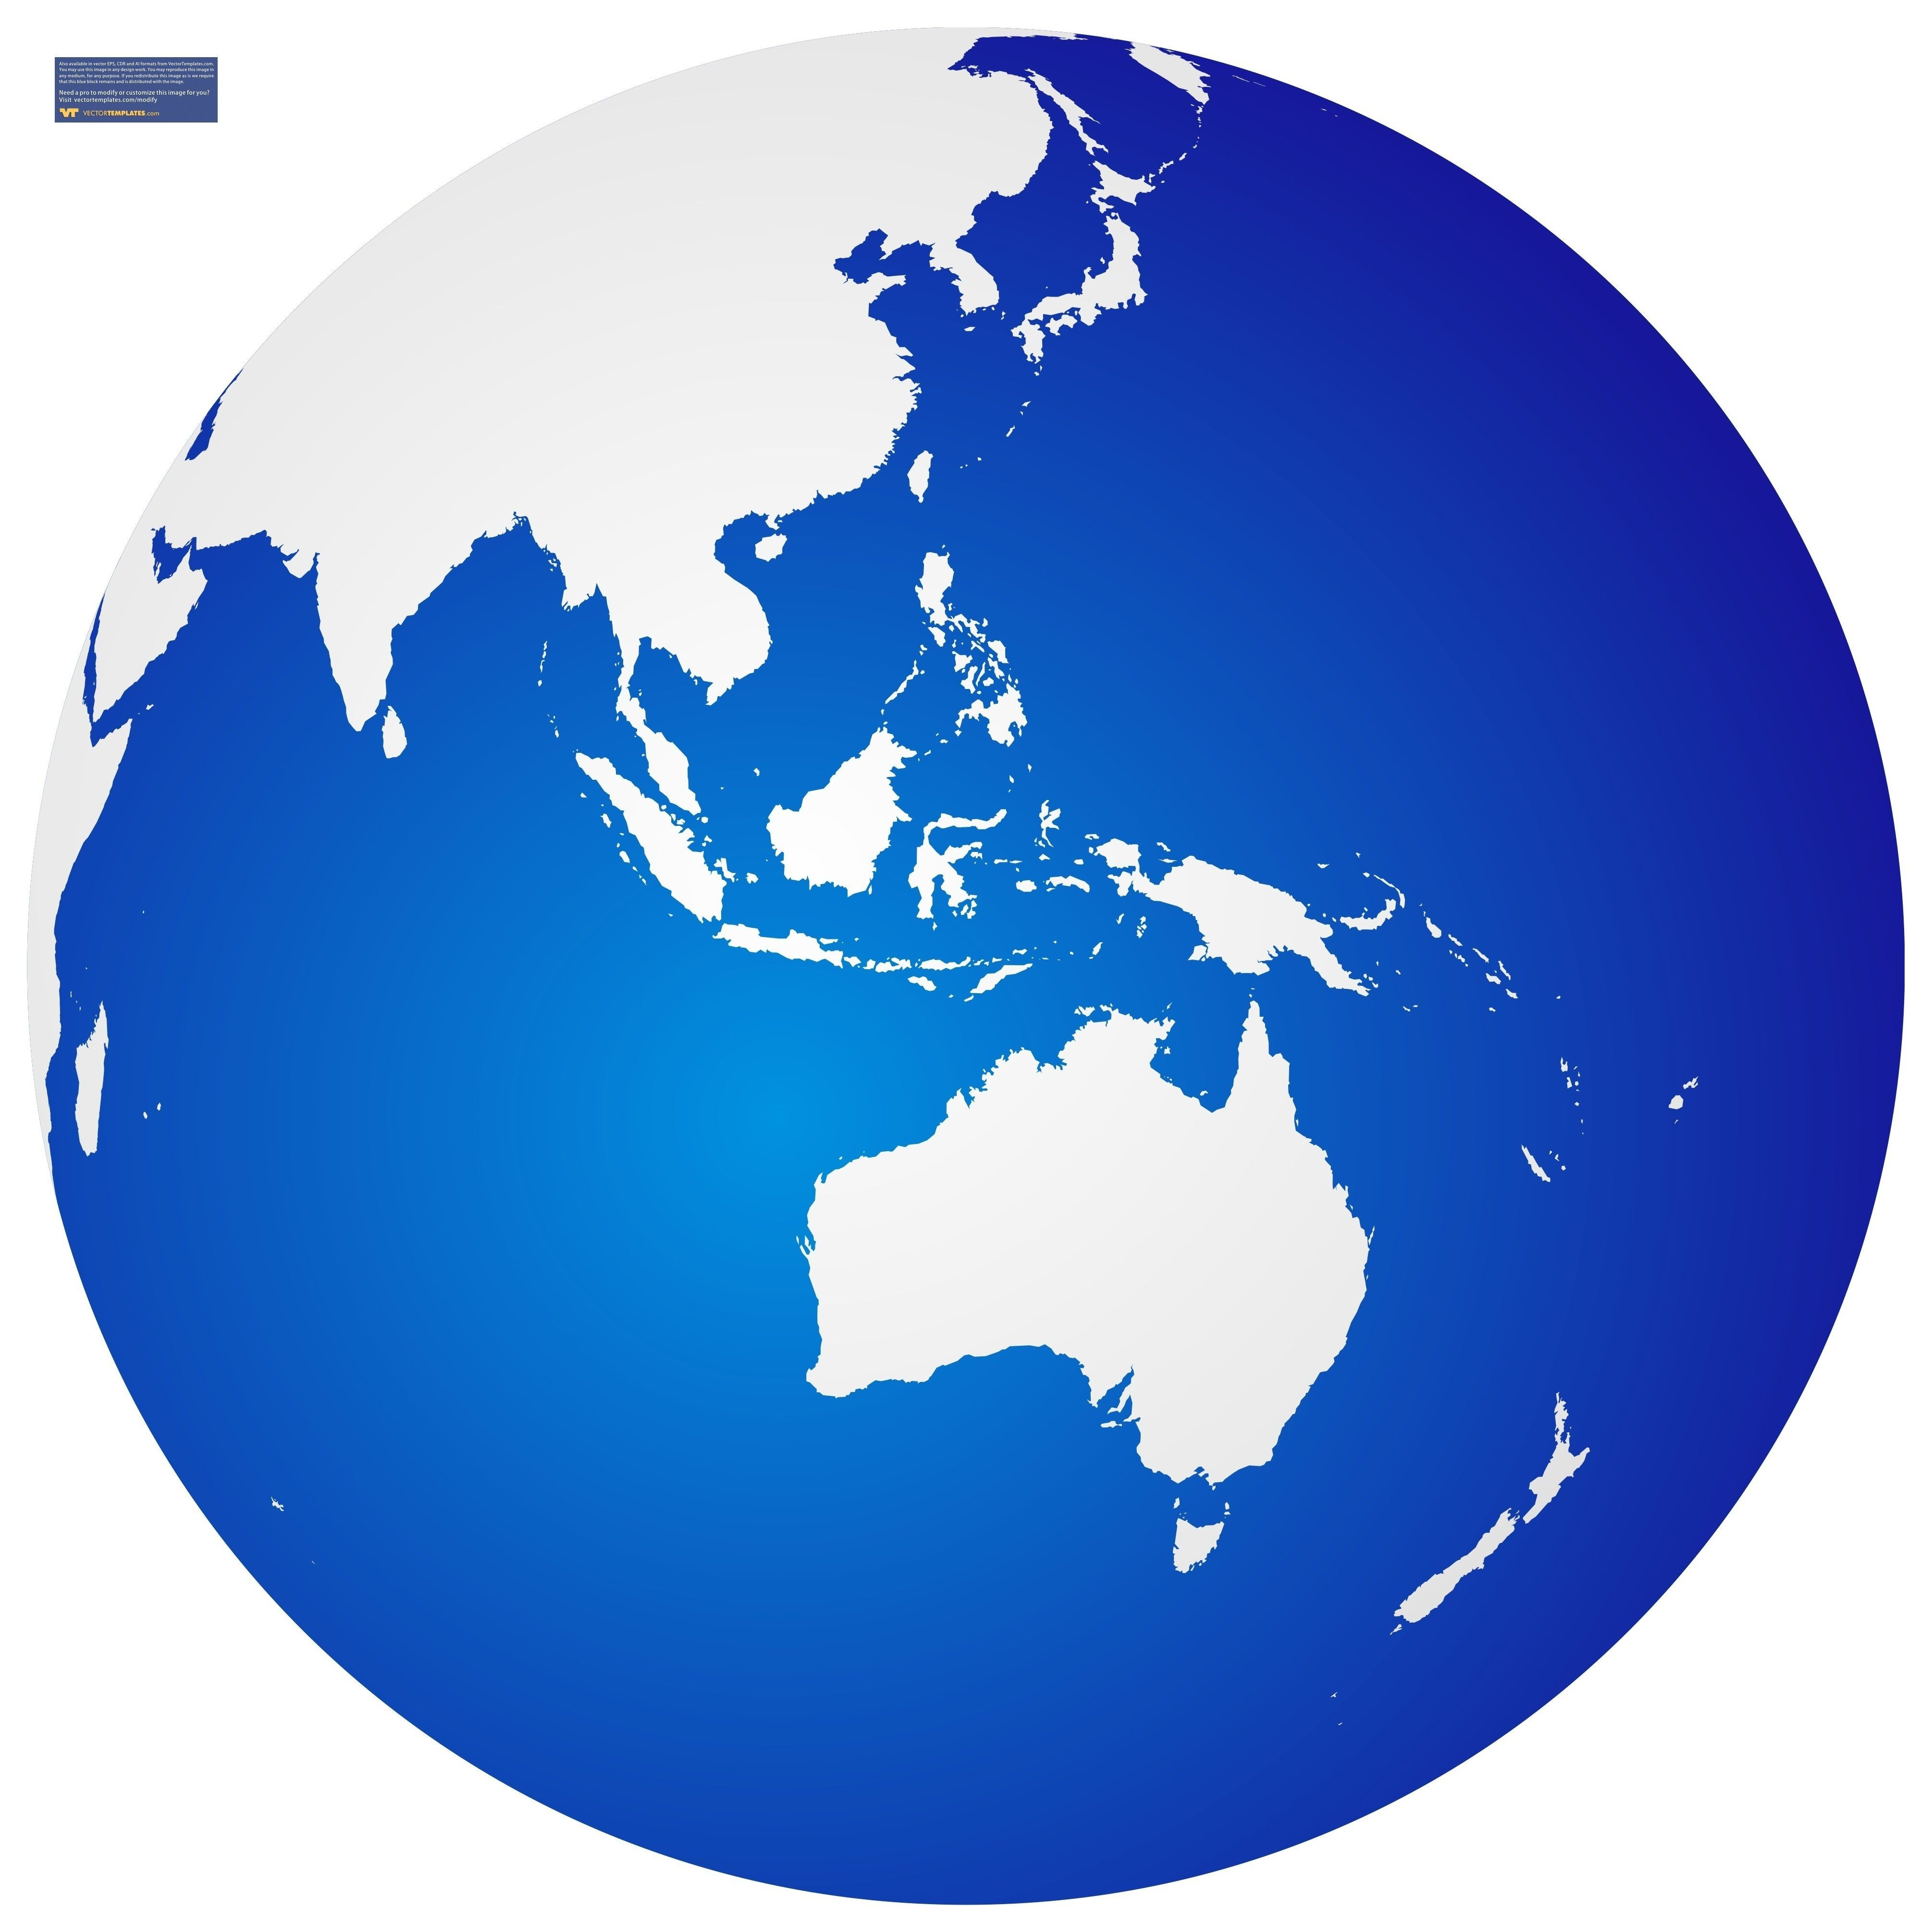 World map in globe vector copy best world map cartoon globe world map in globe vector copy best world map cartoon globe inspirationa world map vector eps free download fresh best free earth globe gumiabroncs Images